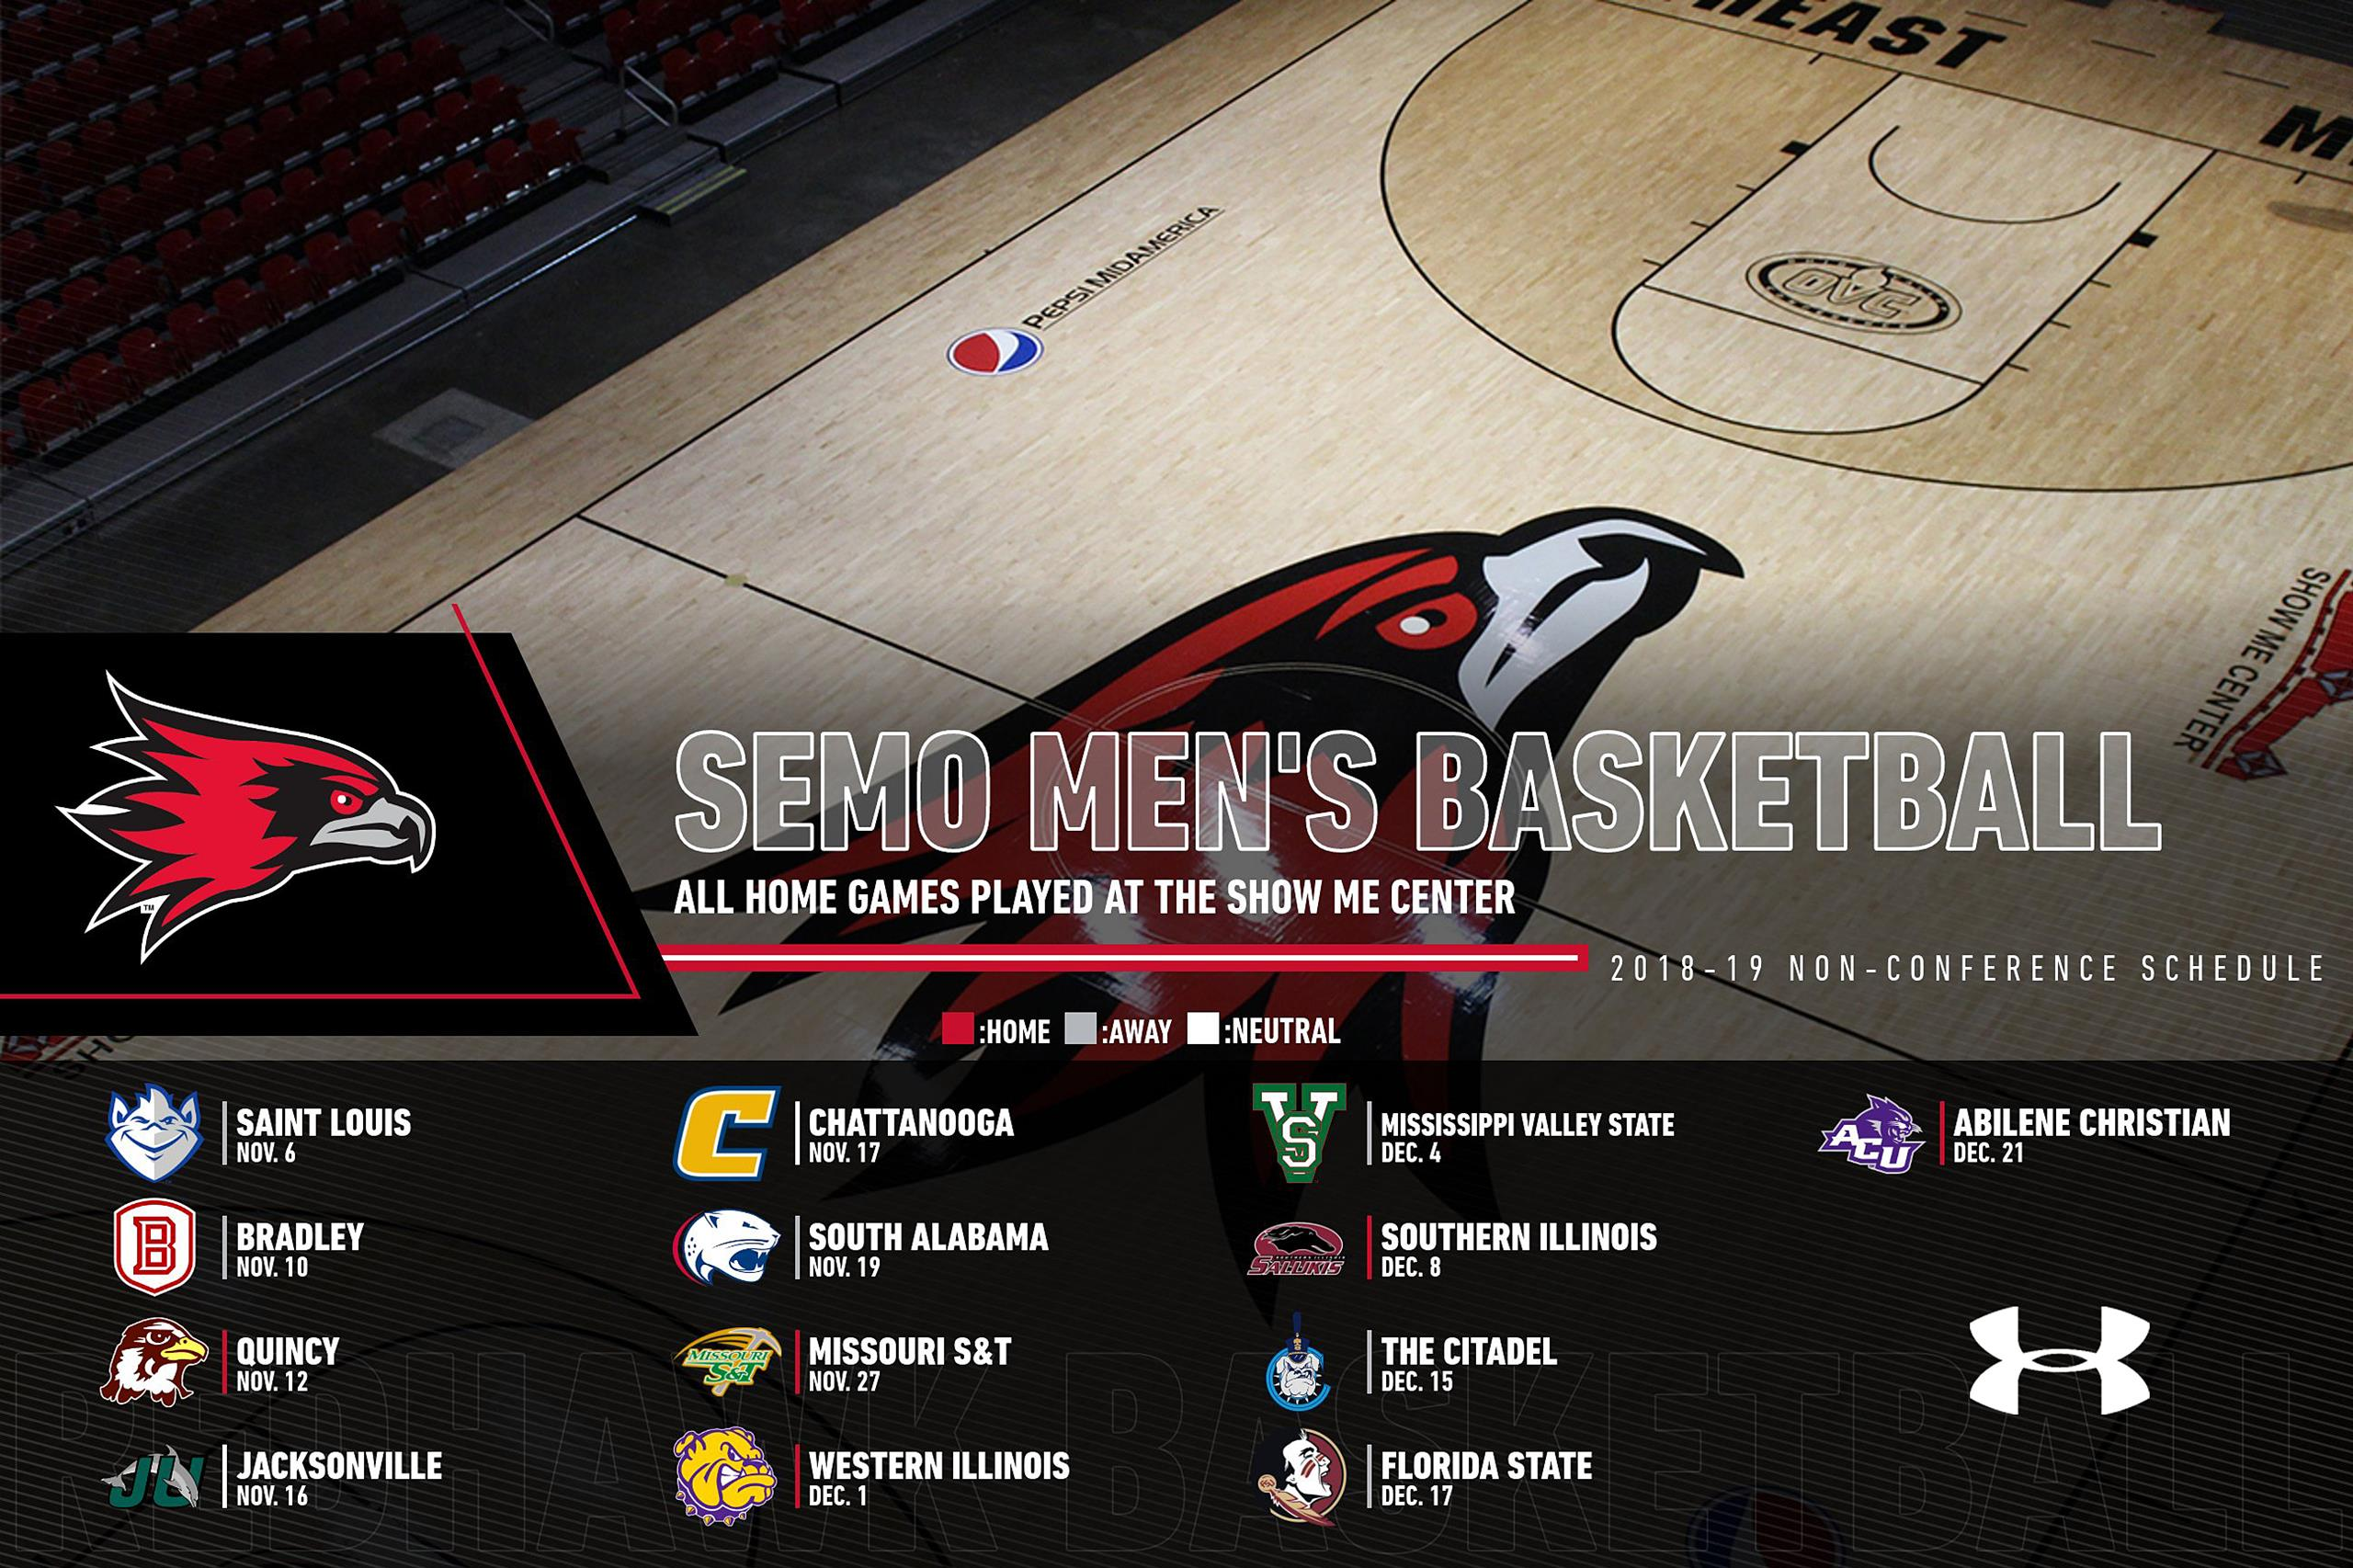 2018-19 Men's Basketball Non-Conference Schedule